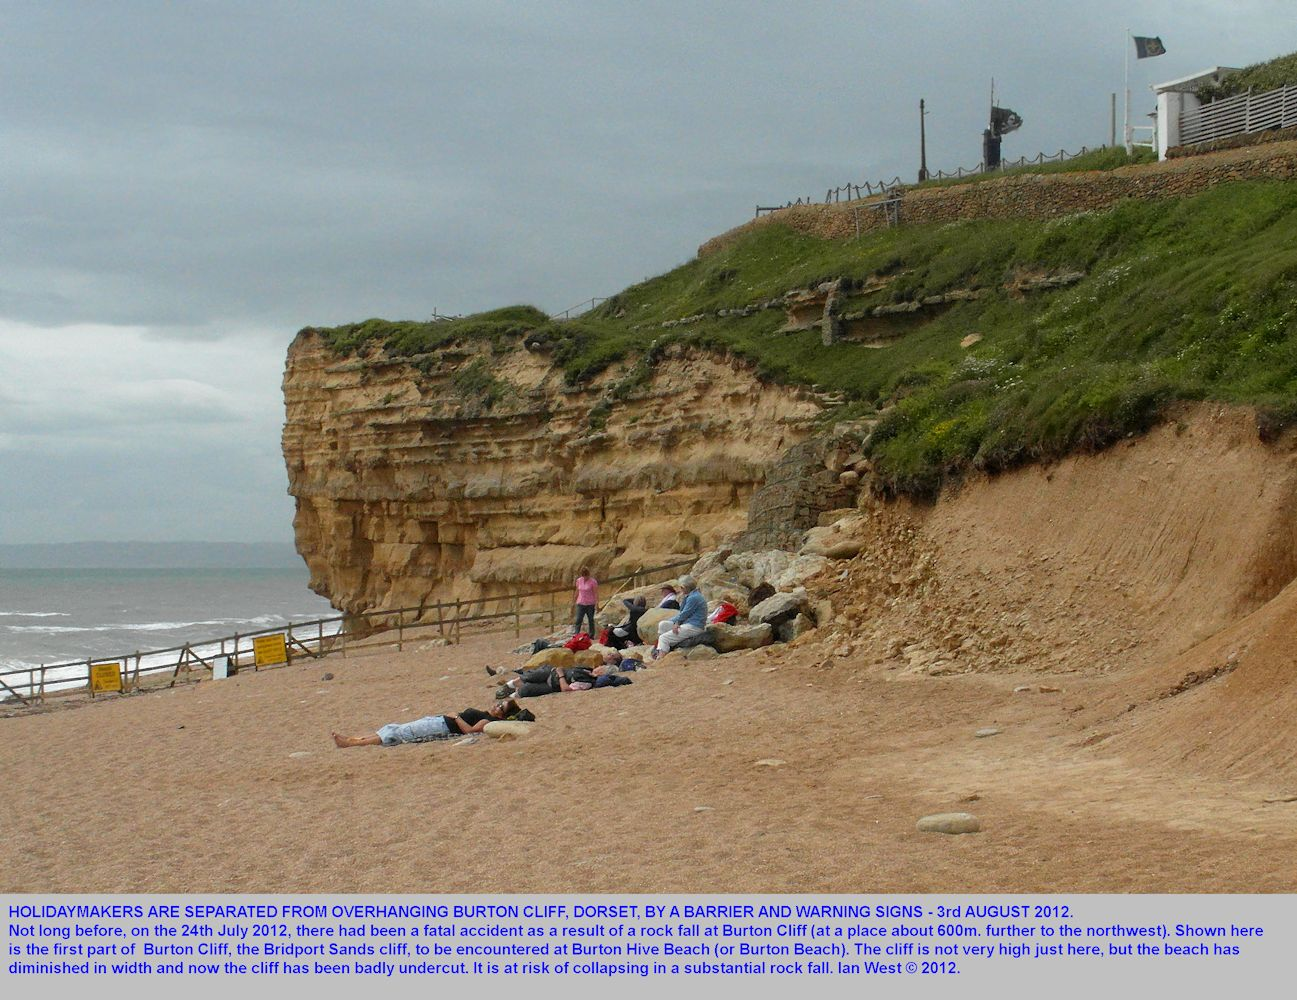 The first part of Burton Cliff at Burton Hive Beach, Burton Bradstock, Dorset, with the cliff area closed off because of a recent fatal rock fall, 3rd August 2012